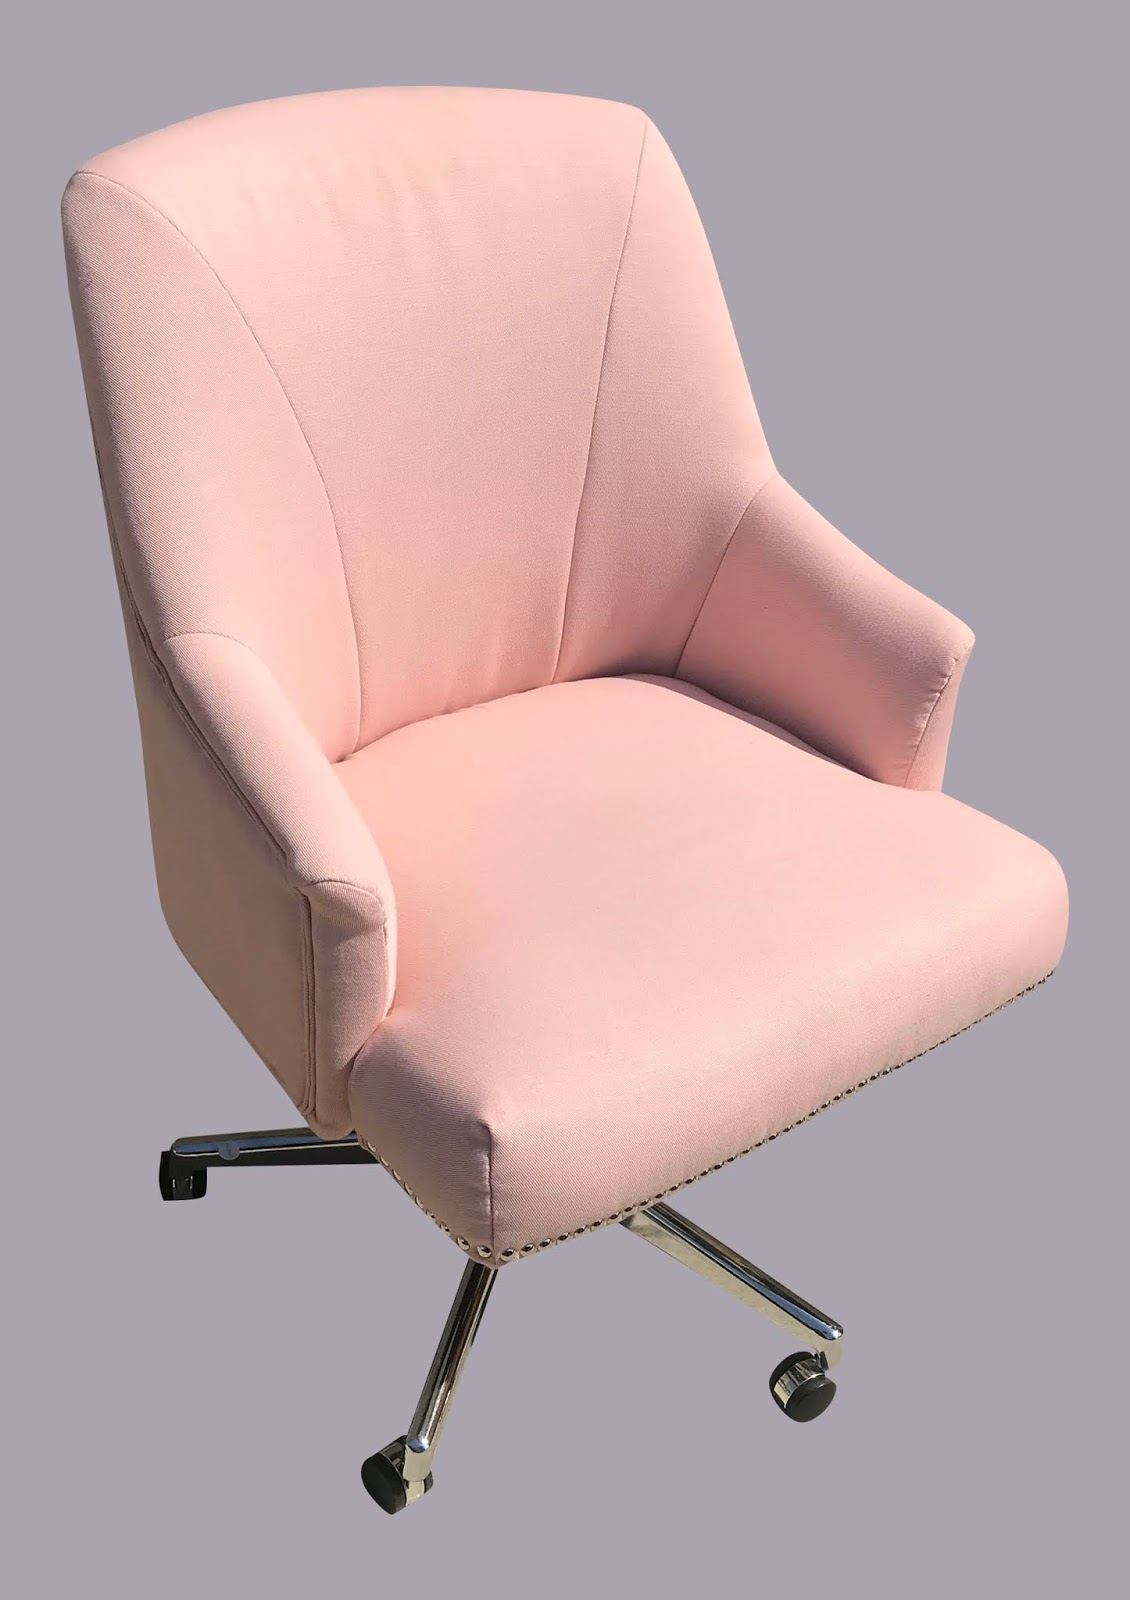 Pink Office Chairs Uhuru Furniture Collectibles Pale Pink Office Chair 95 75 Sold